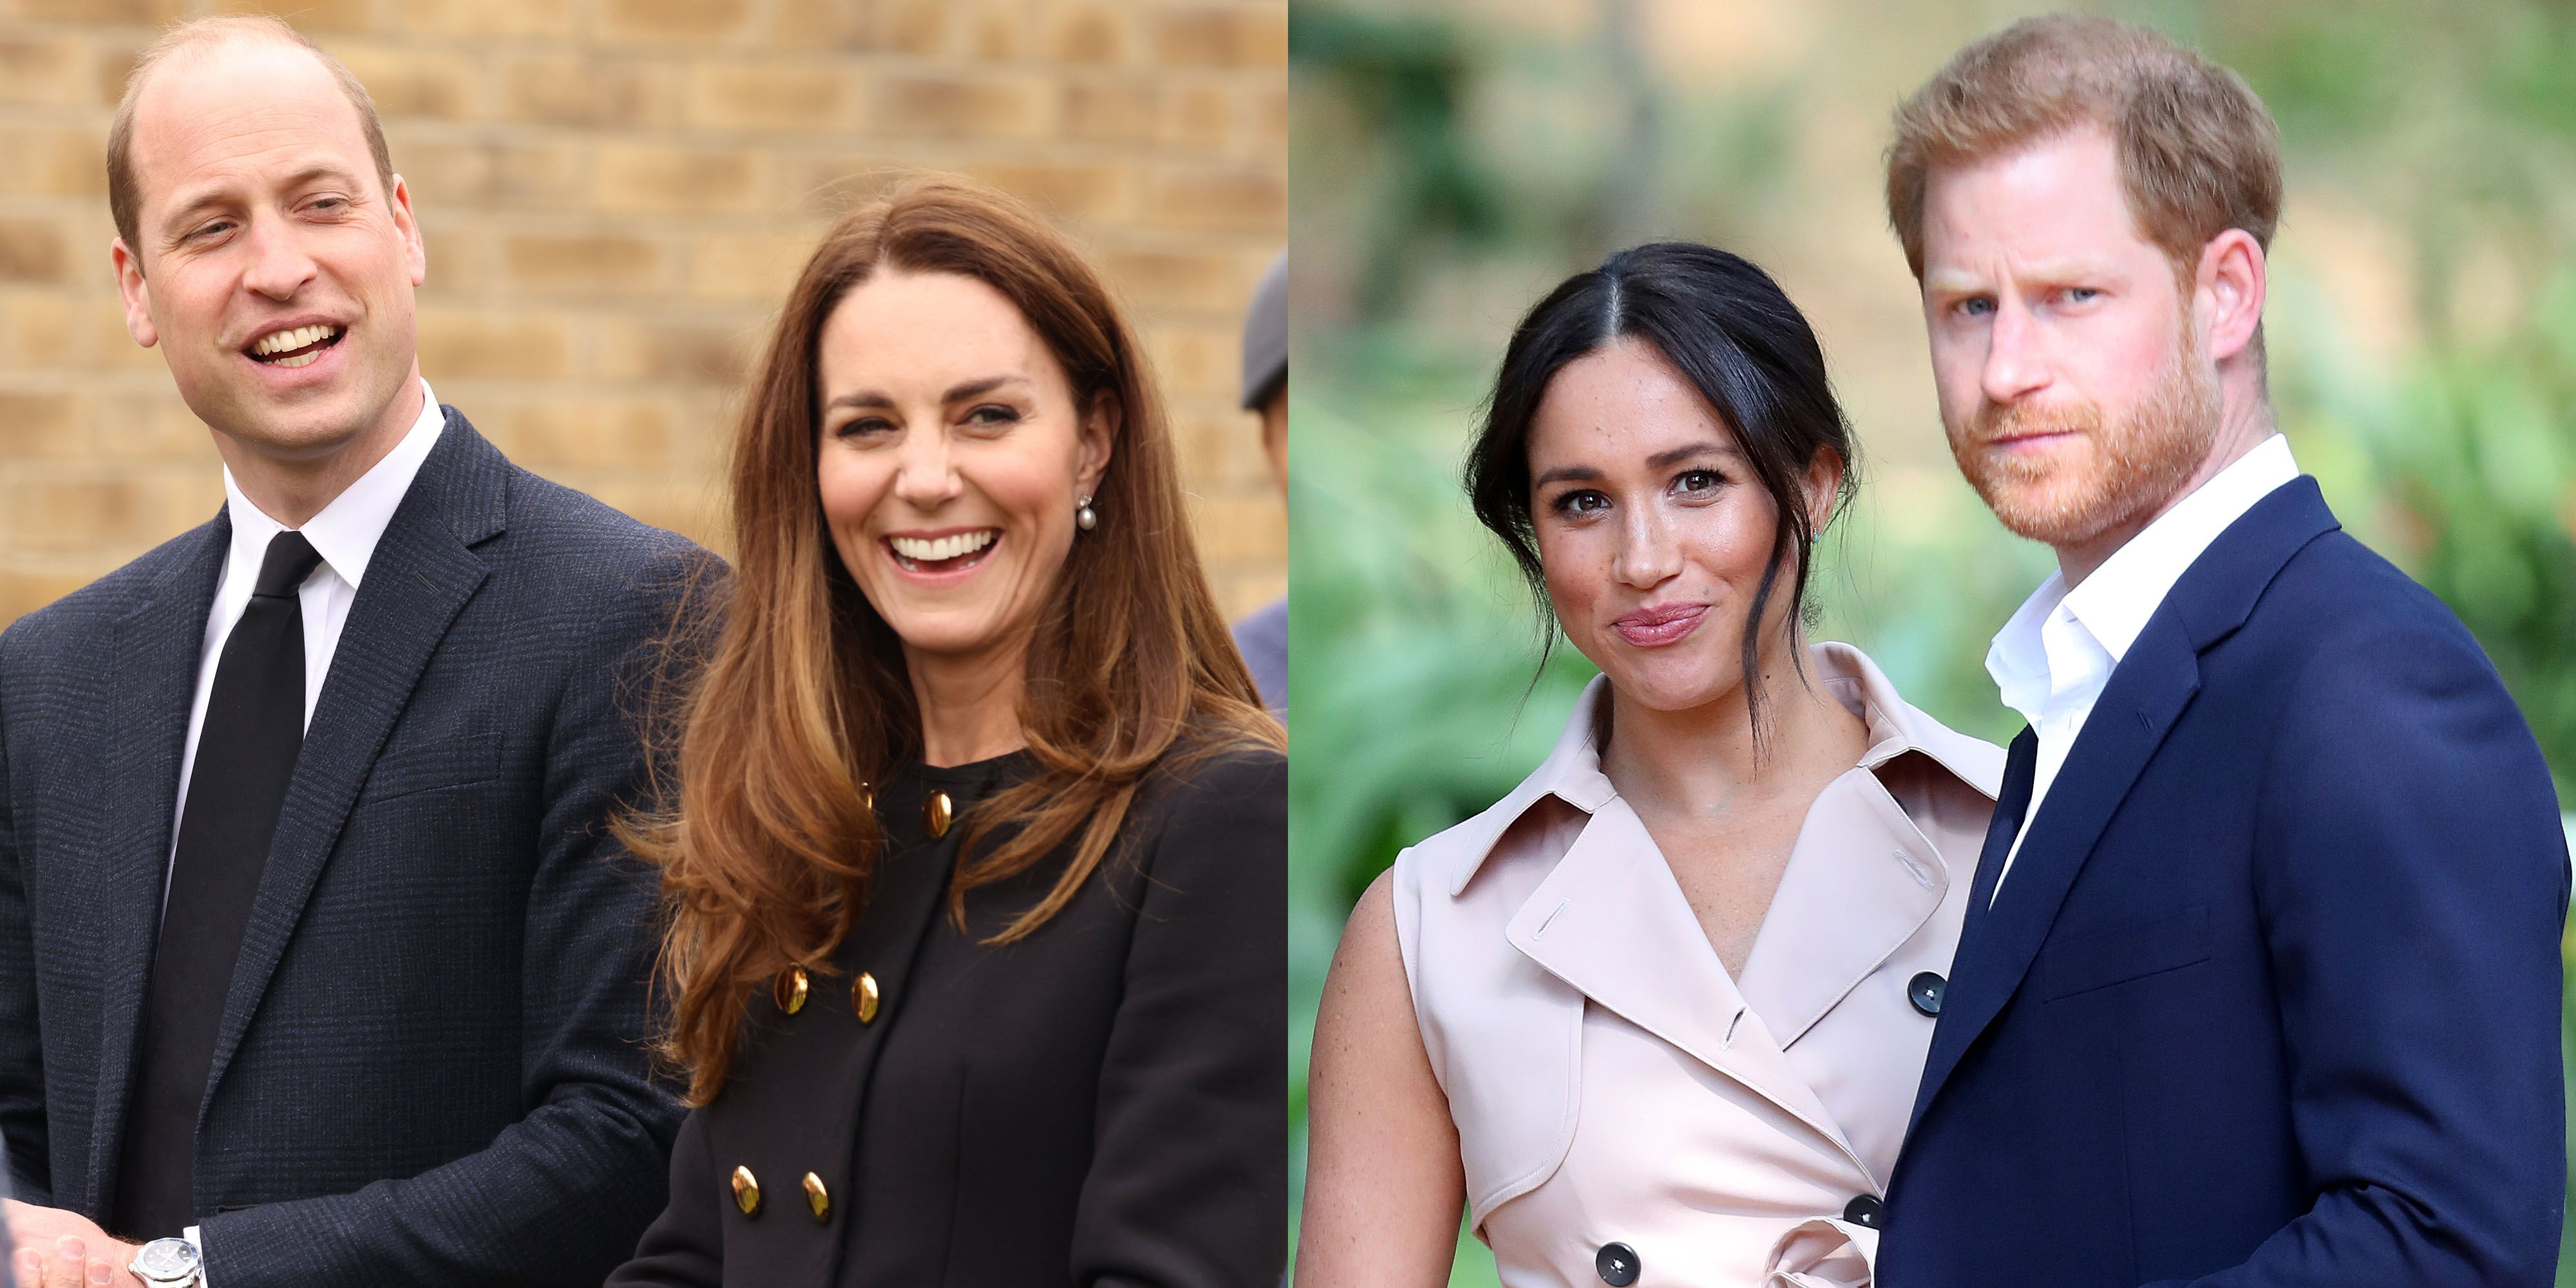 """Prince William and Kate Middleton Are Sending a """"Secret Message to Harry and Meghan,"""" Royal Biographer Says"""